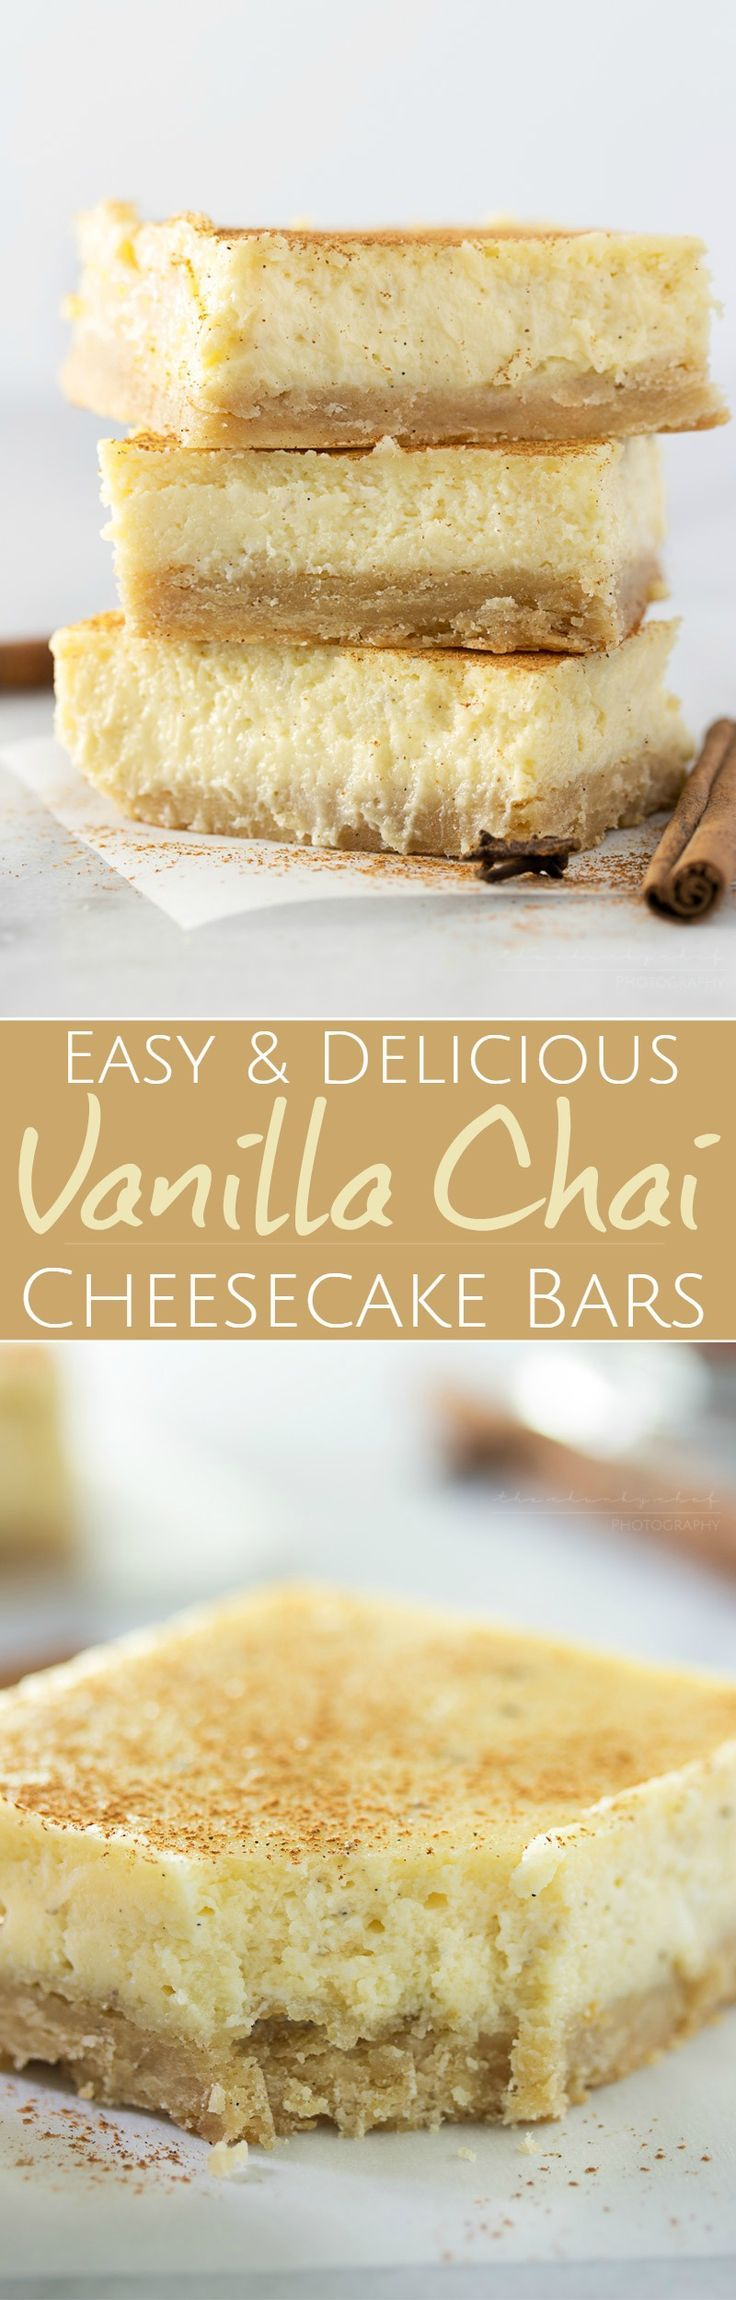 Vanilla Chai Cheesecake Bars   Love cheesecake, but don't want a whole cake? These lusciously creamy cheesecake bars are flavored with chai and vanilla bean for the perfect treat!   http://thechunkychef.com